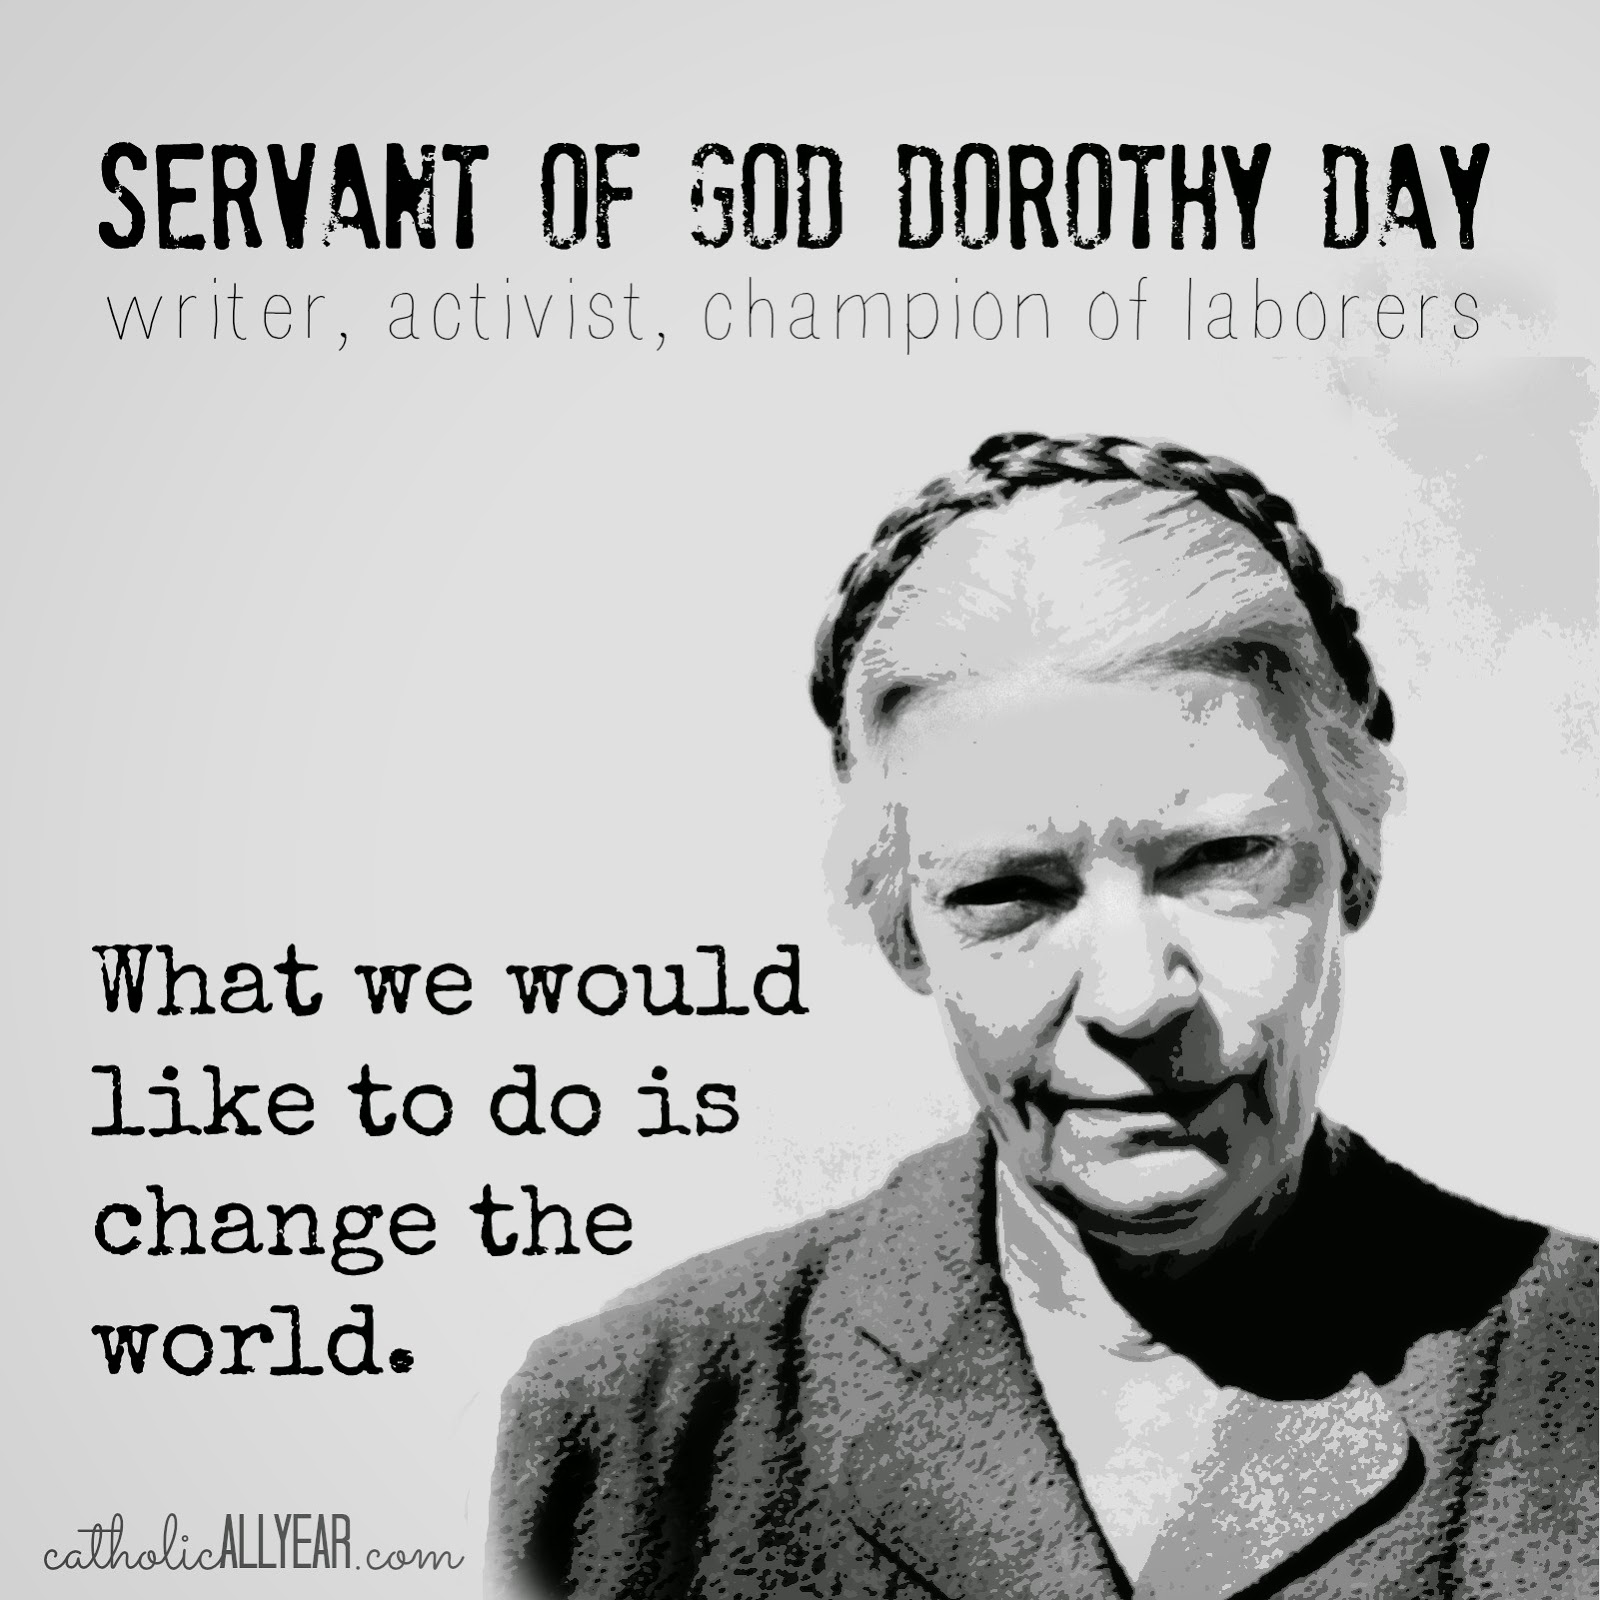 the influence of dorothy day on catholic religion Day became a noted activist whose influence reached beyond the catholic  worker, leading anti-war and anti-nuclear proliferation movements as well as.